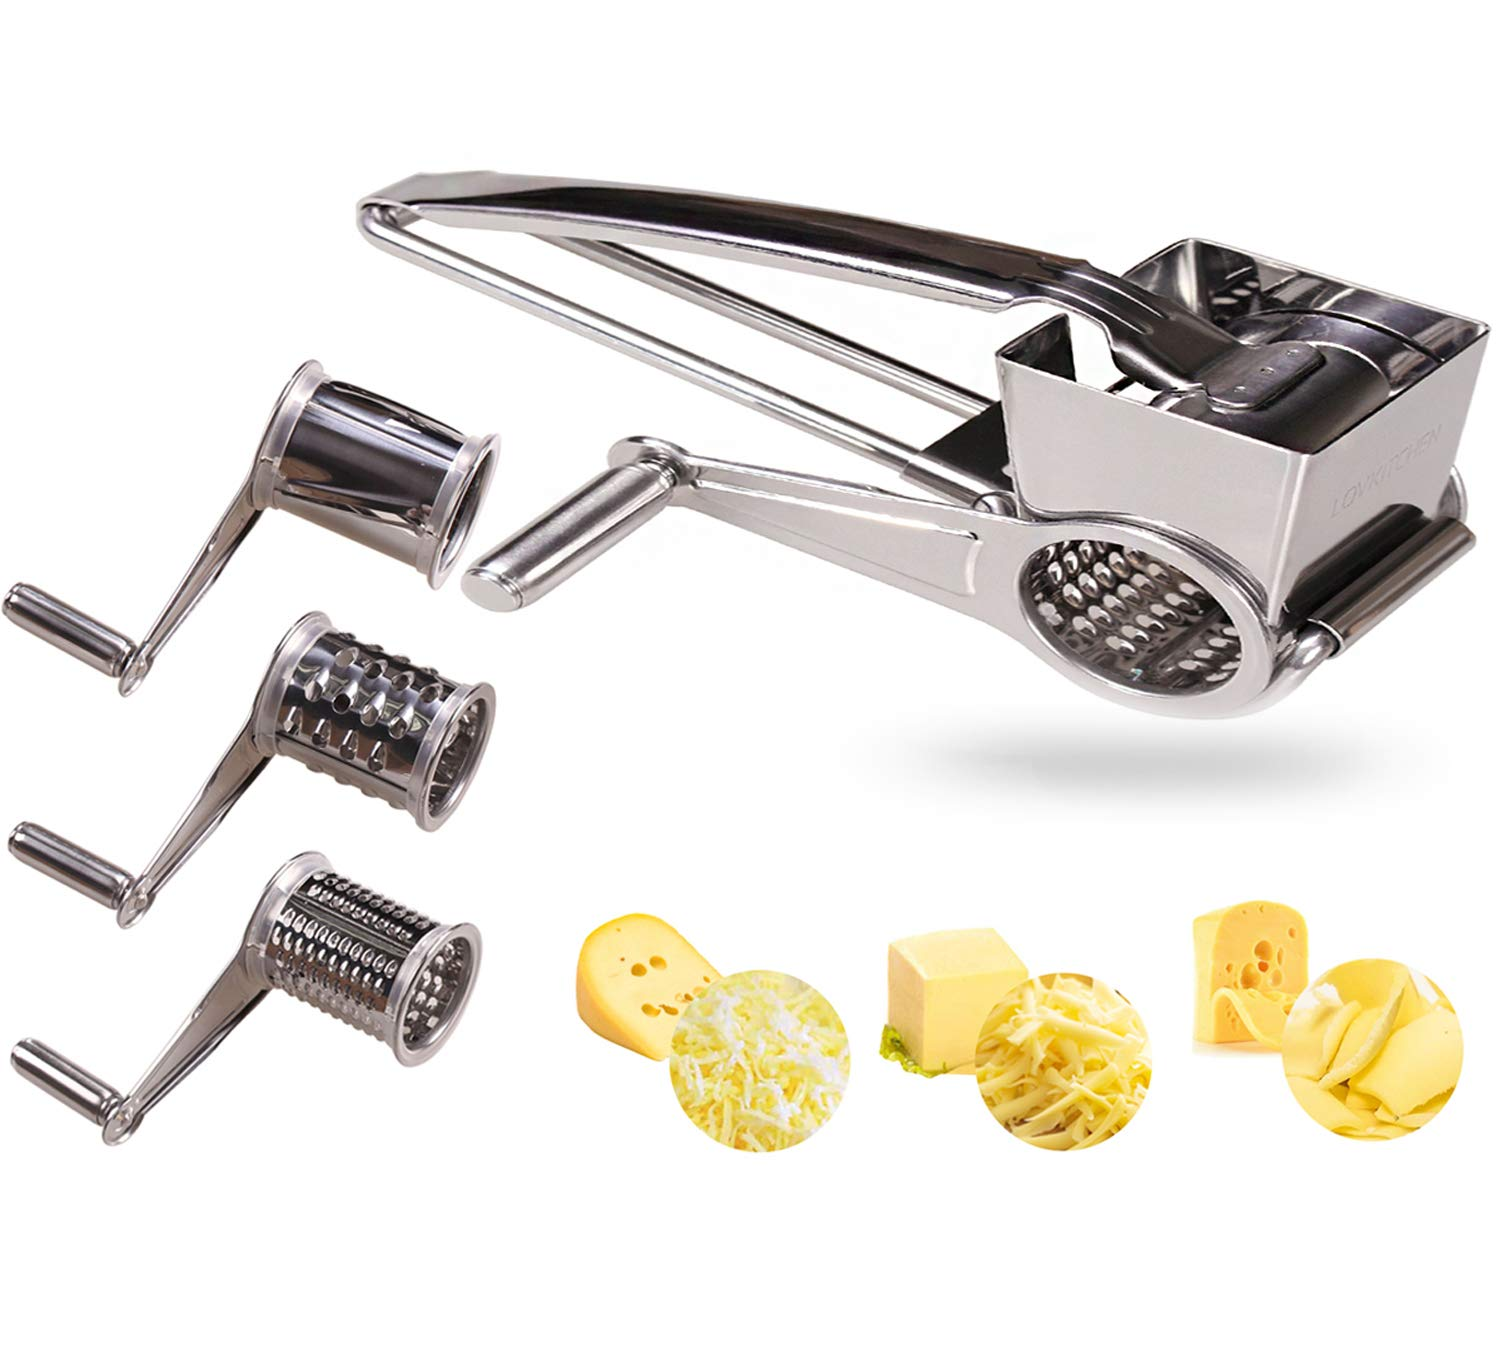 LOVKITCHEN Vegetable Cheese Grater with 3 Interchanging Rotary Ultra Sharp Cylinders Stainless Steel Drums & Slicer